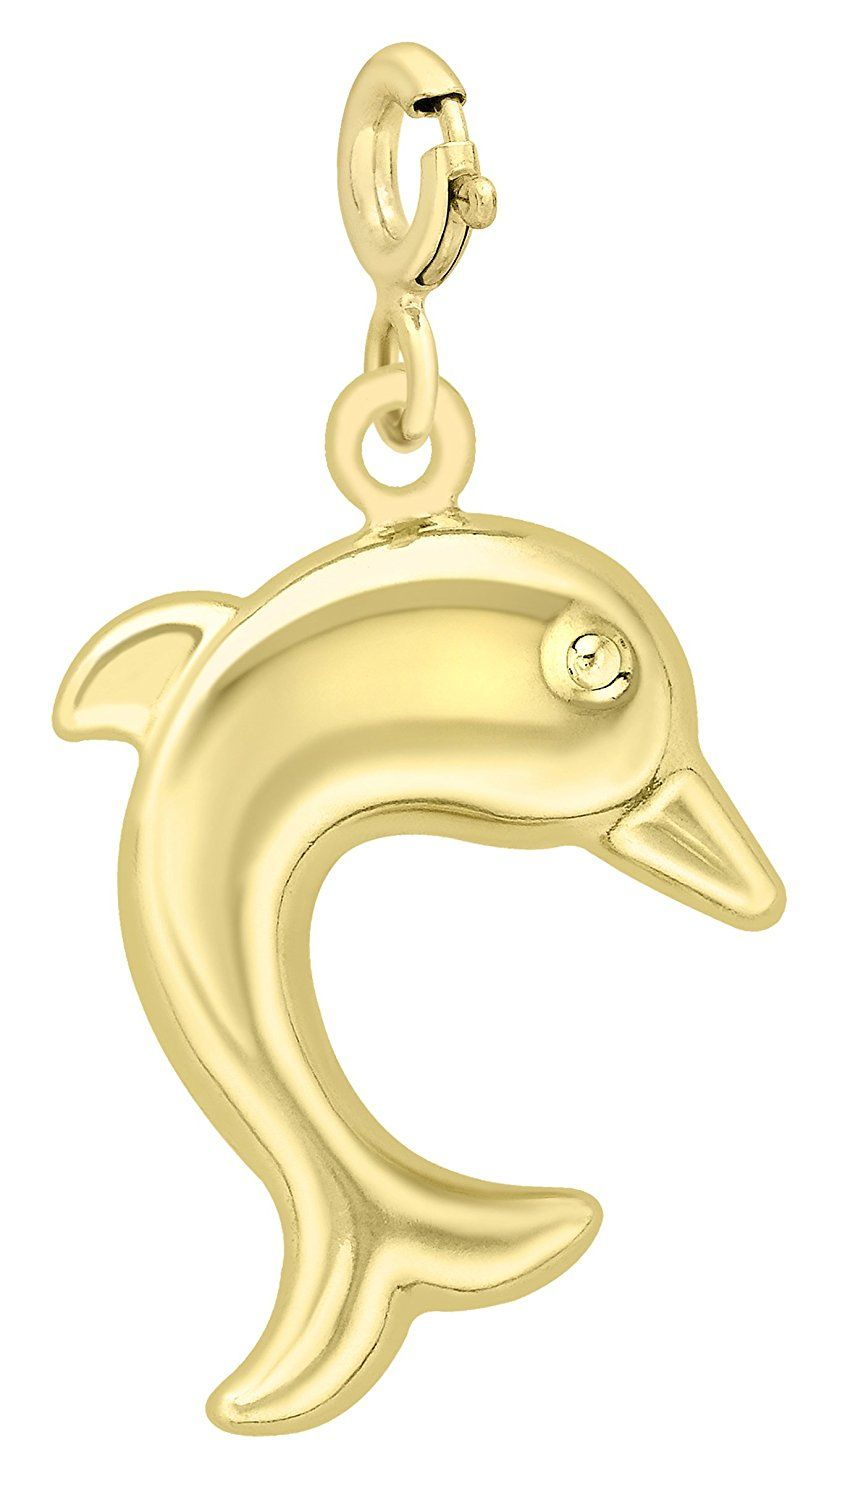 Carissima Gold 9 ct Yellow Gold Dolphin Charm Pendant